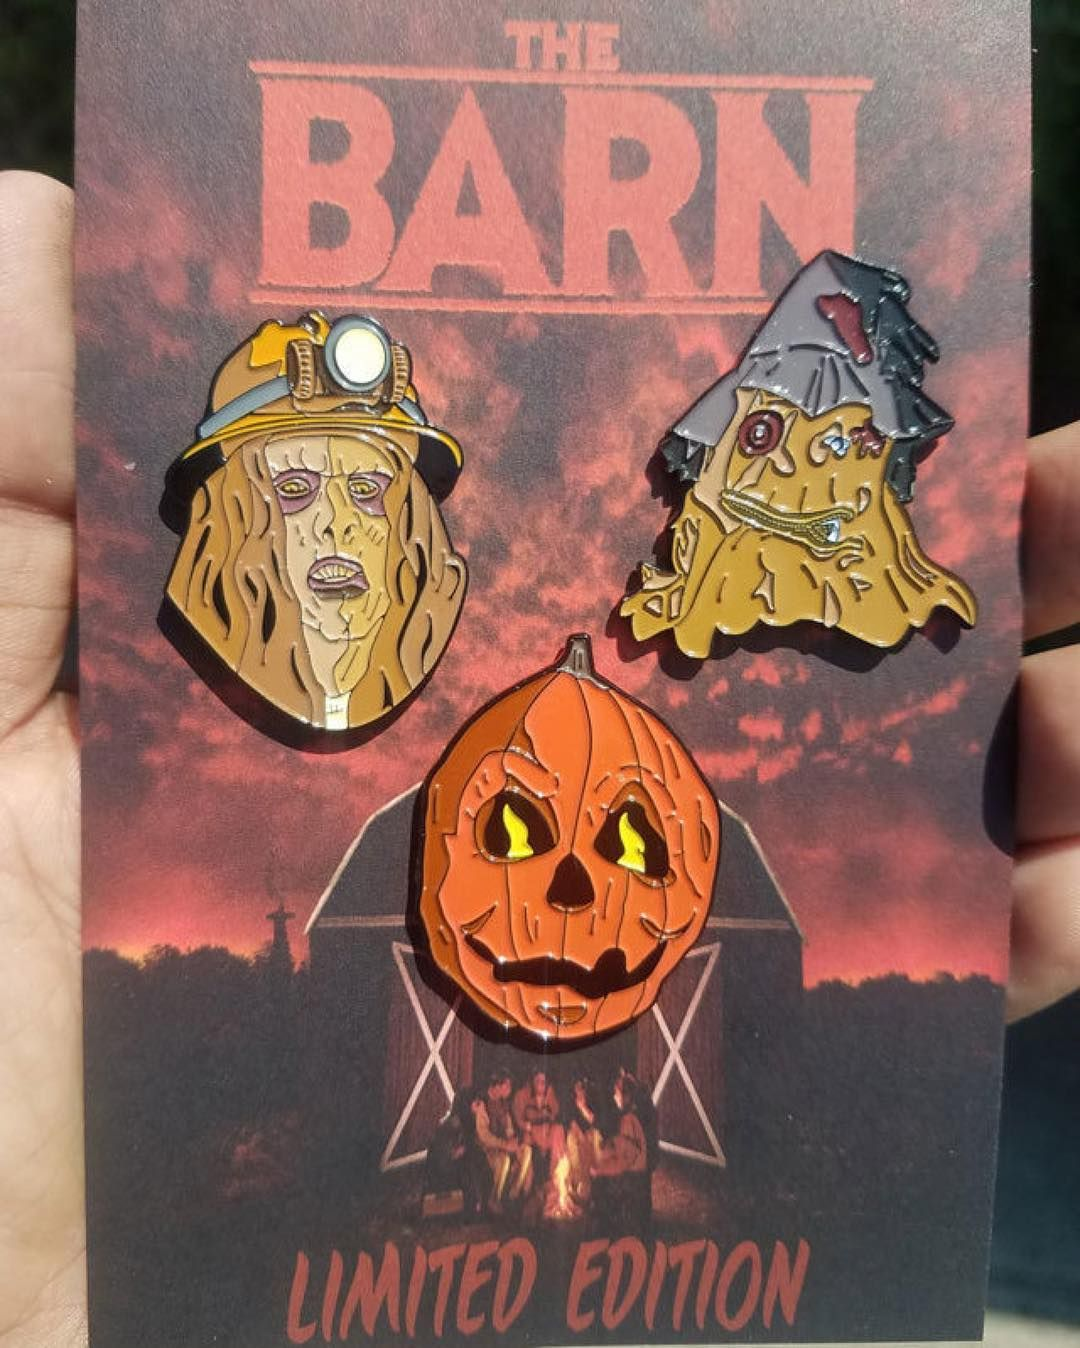 """Repost @igorslab They are finally here. The Barn Official Licensed Pin Set 3 pin set 1.5"""" Soft Enamel Pins With Black Metal Finish (Limited Edition out of 50) Limited 25 pin sets to my site and 25 pin sets will be sold by @the_barn_movie crew at horror conventions. Only $21 bucks for the set. igorslab.bigcartel.com . #thebarn #pumpkinpin #minerpin #scarecrowpin #indiehorror #indiehorrorpins #80shorror #horrorpins #lapelpins #horrorpingame #horrorpin #horrormerch #pincollection #horrorfan…"""